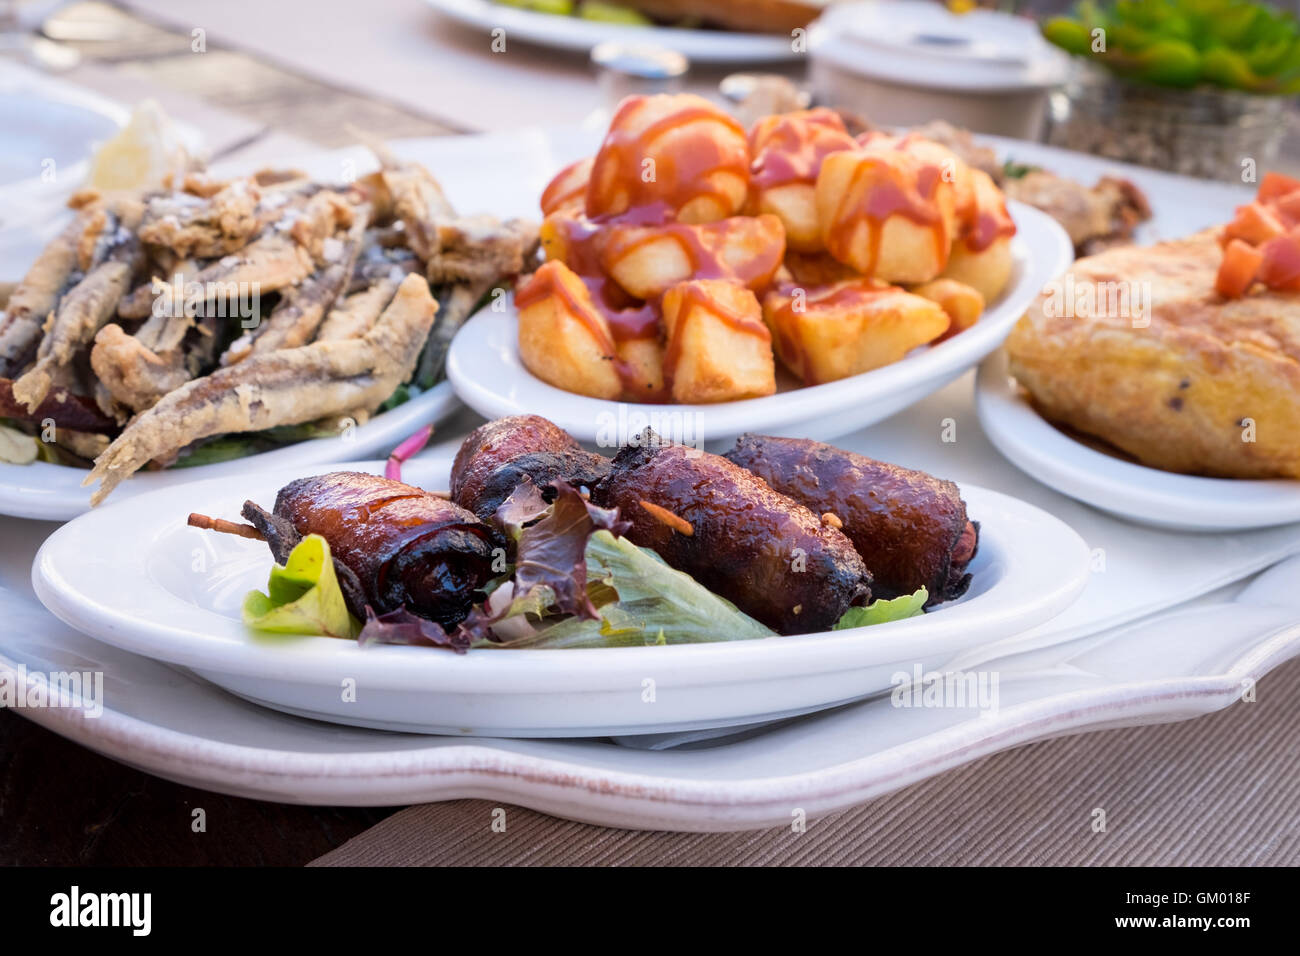 A selection of Mallorcan Tapas dishes, including dates wrapped in bacon pictured front - Stock Image